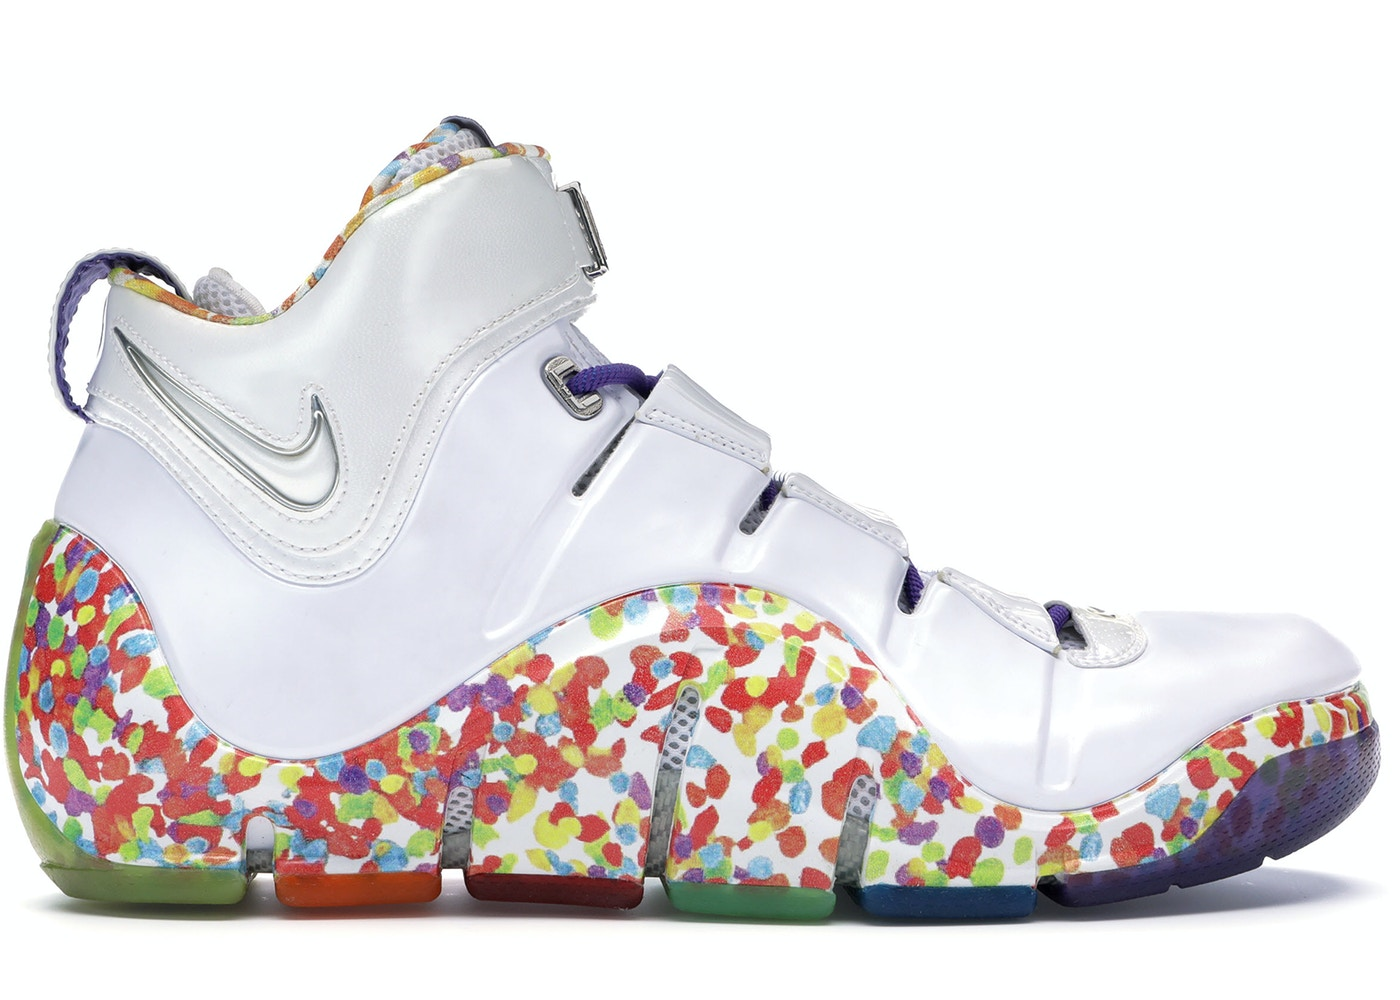 9739e96fc52 Buy Nike LeBron Shoes   Deadstock Sneakers